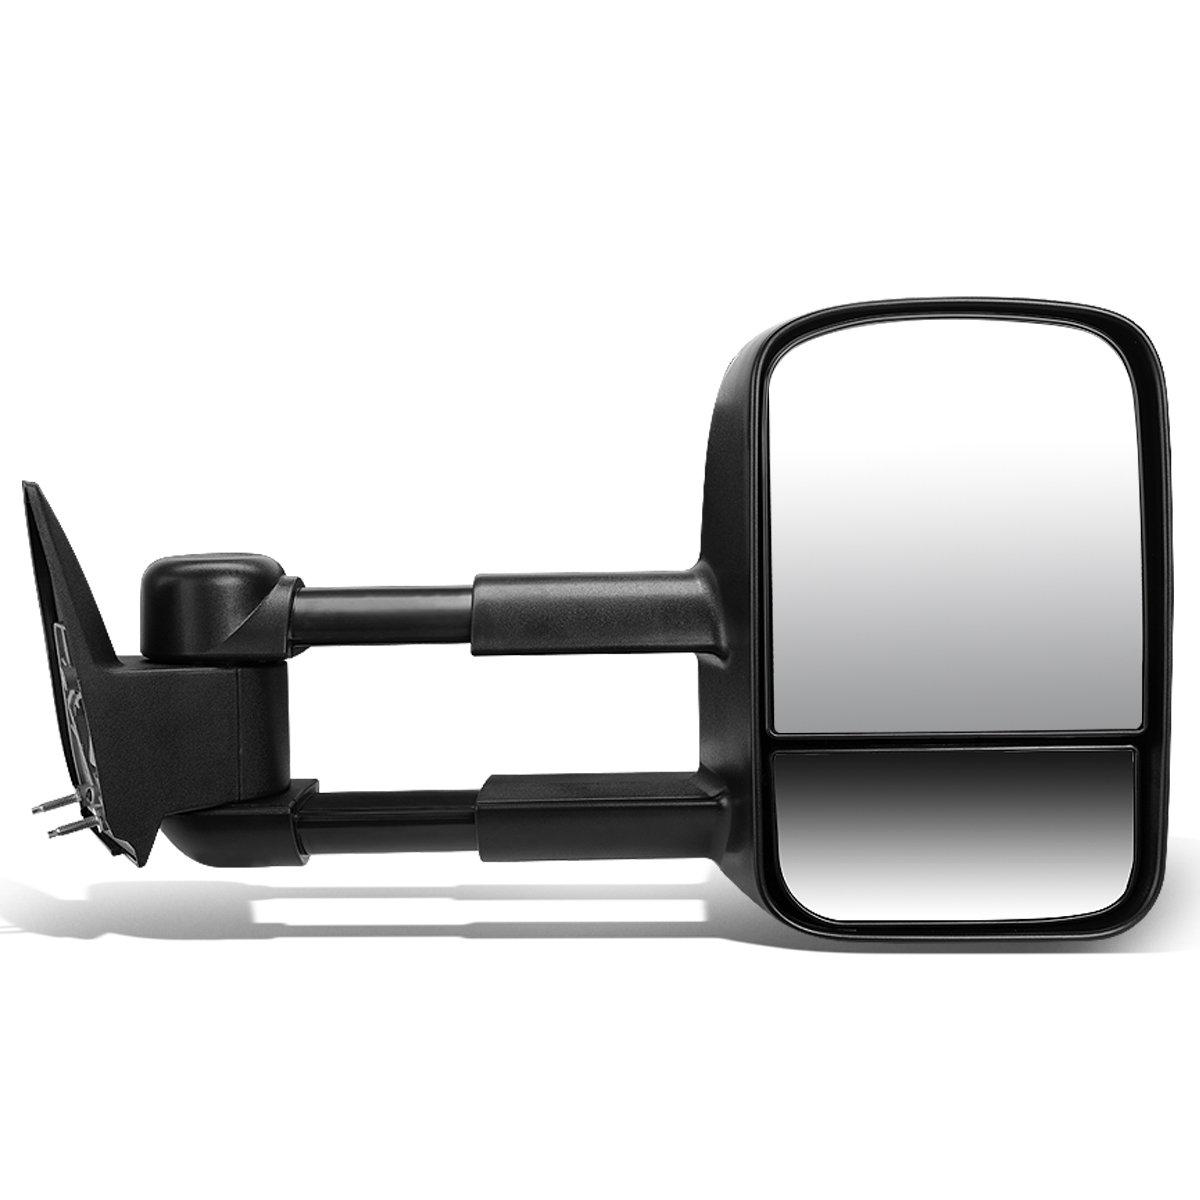 For 1992-1999 Chevy Tahoe/GMC Yukon Manual Adjustment Tow Towing Mirror (Right/Passenger)